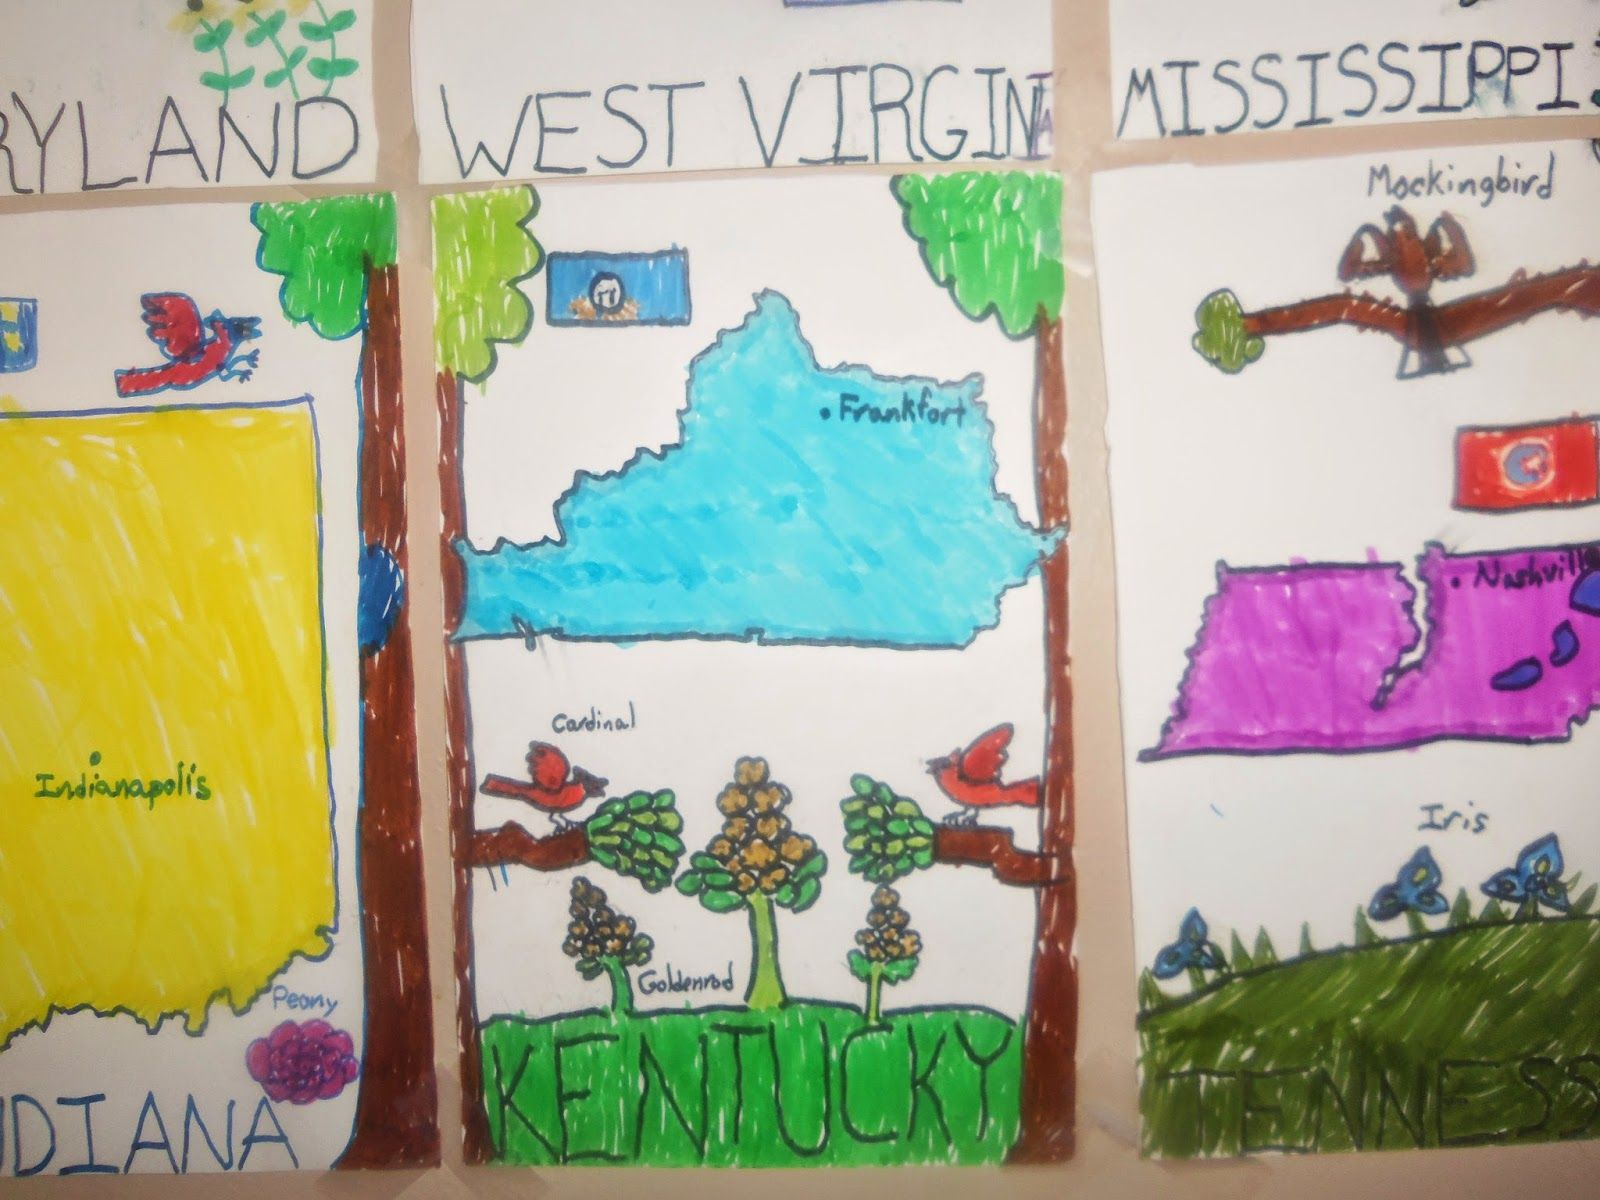 50 States And Capitals Project For 3rd Grade And A New